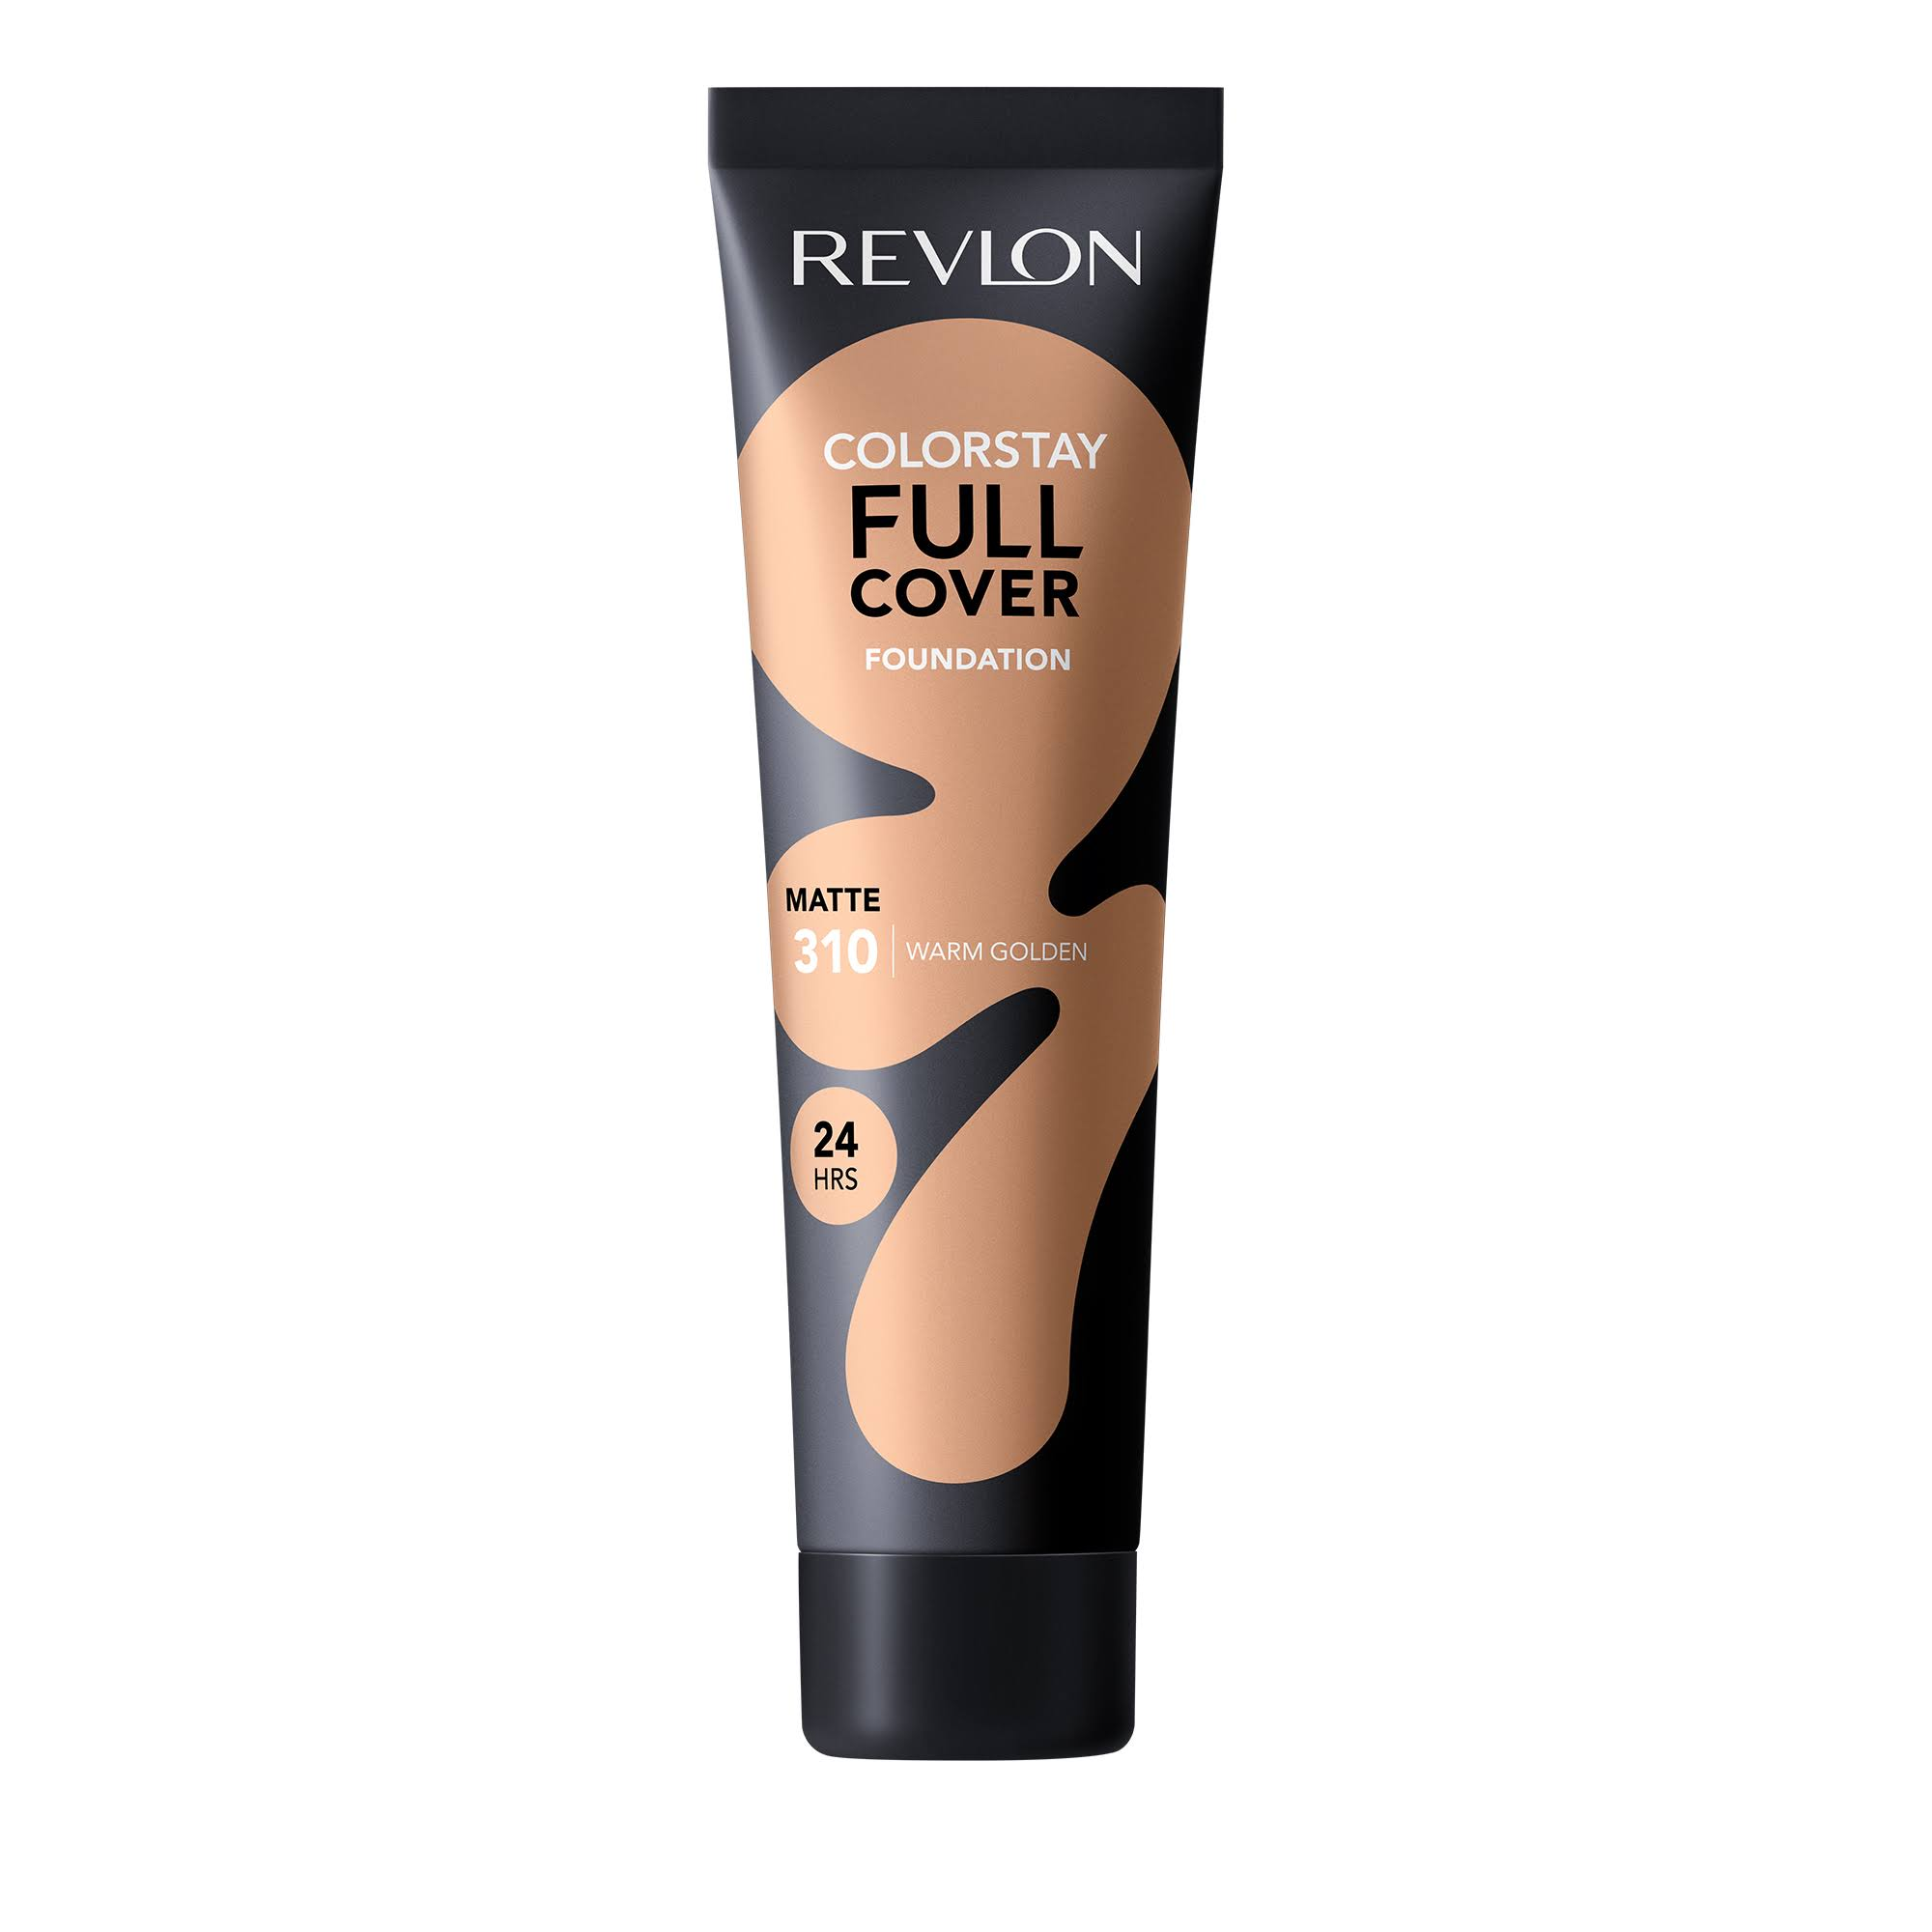 Revlon ColorStay Full Cover Foundation - 310 Warm Golden, 1oz